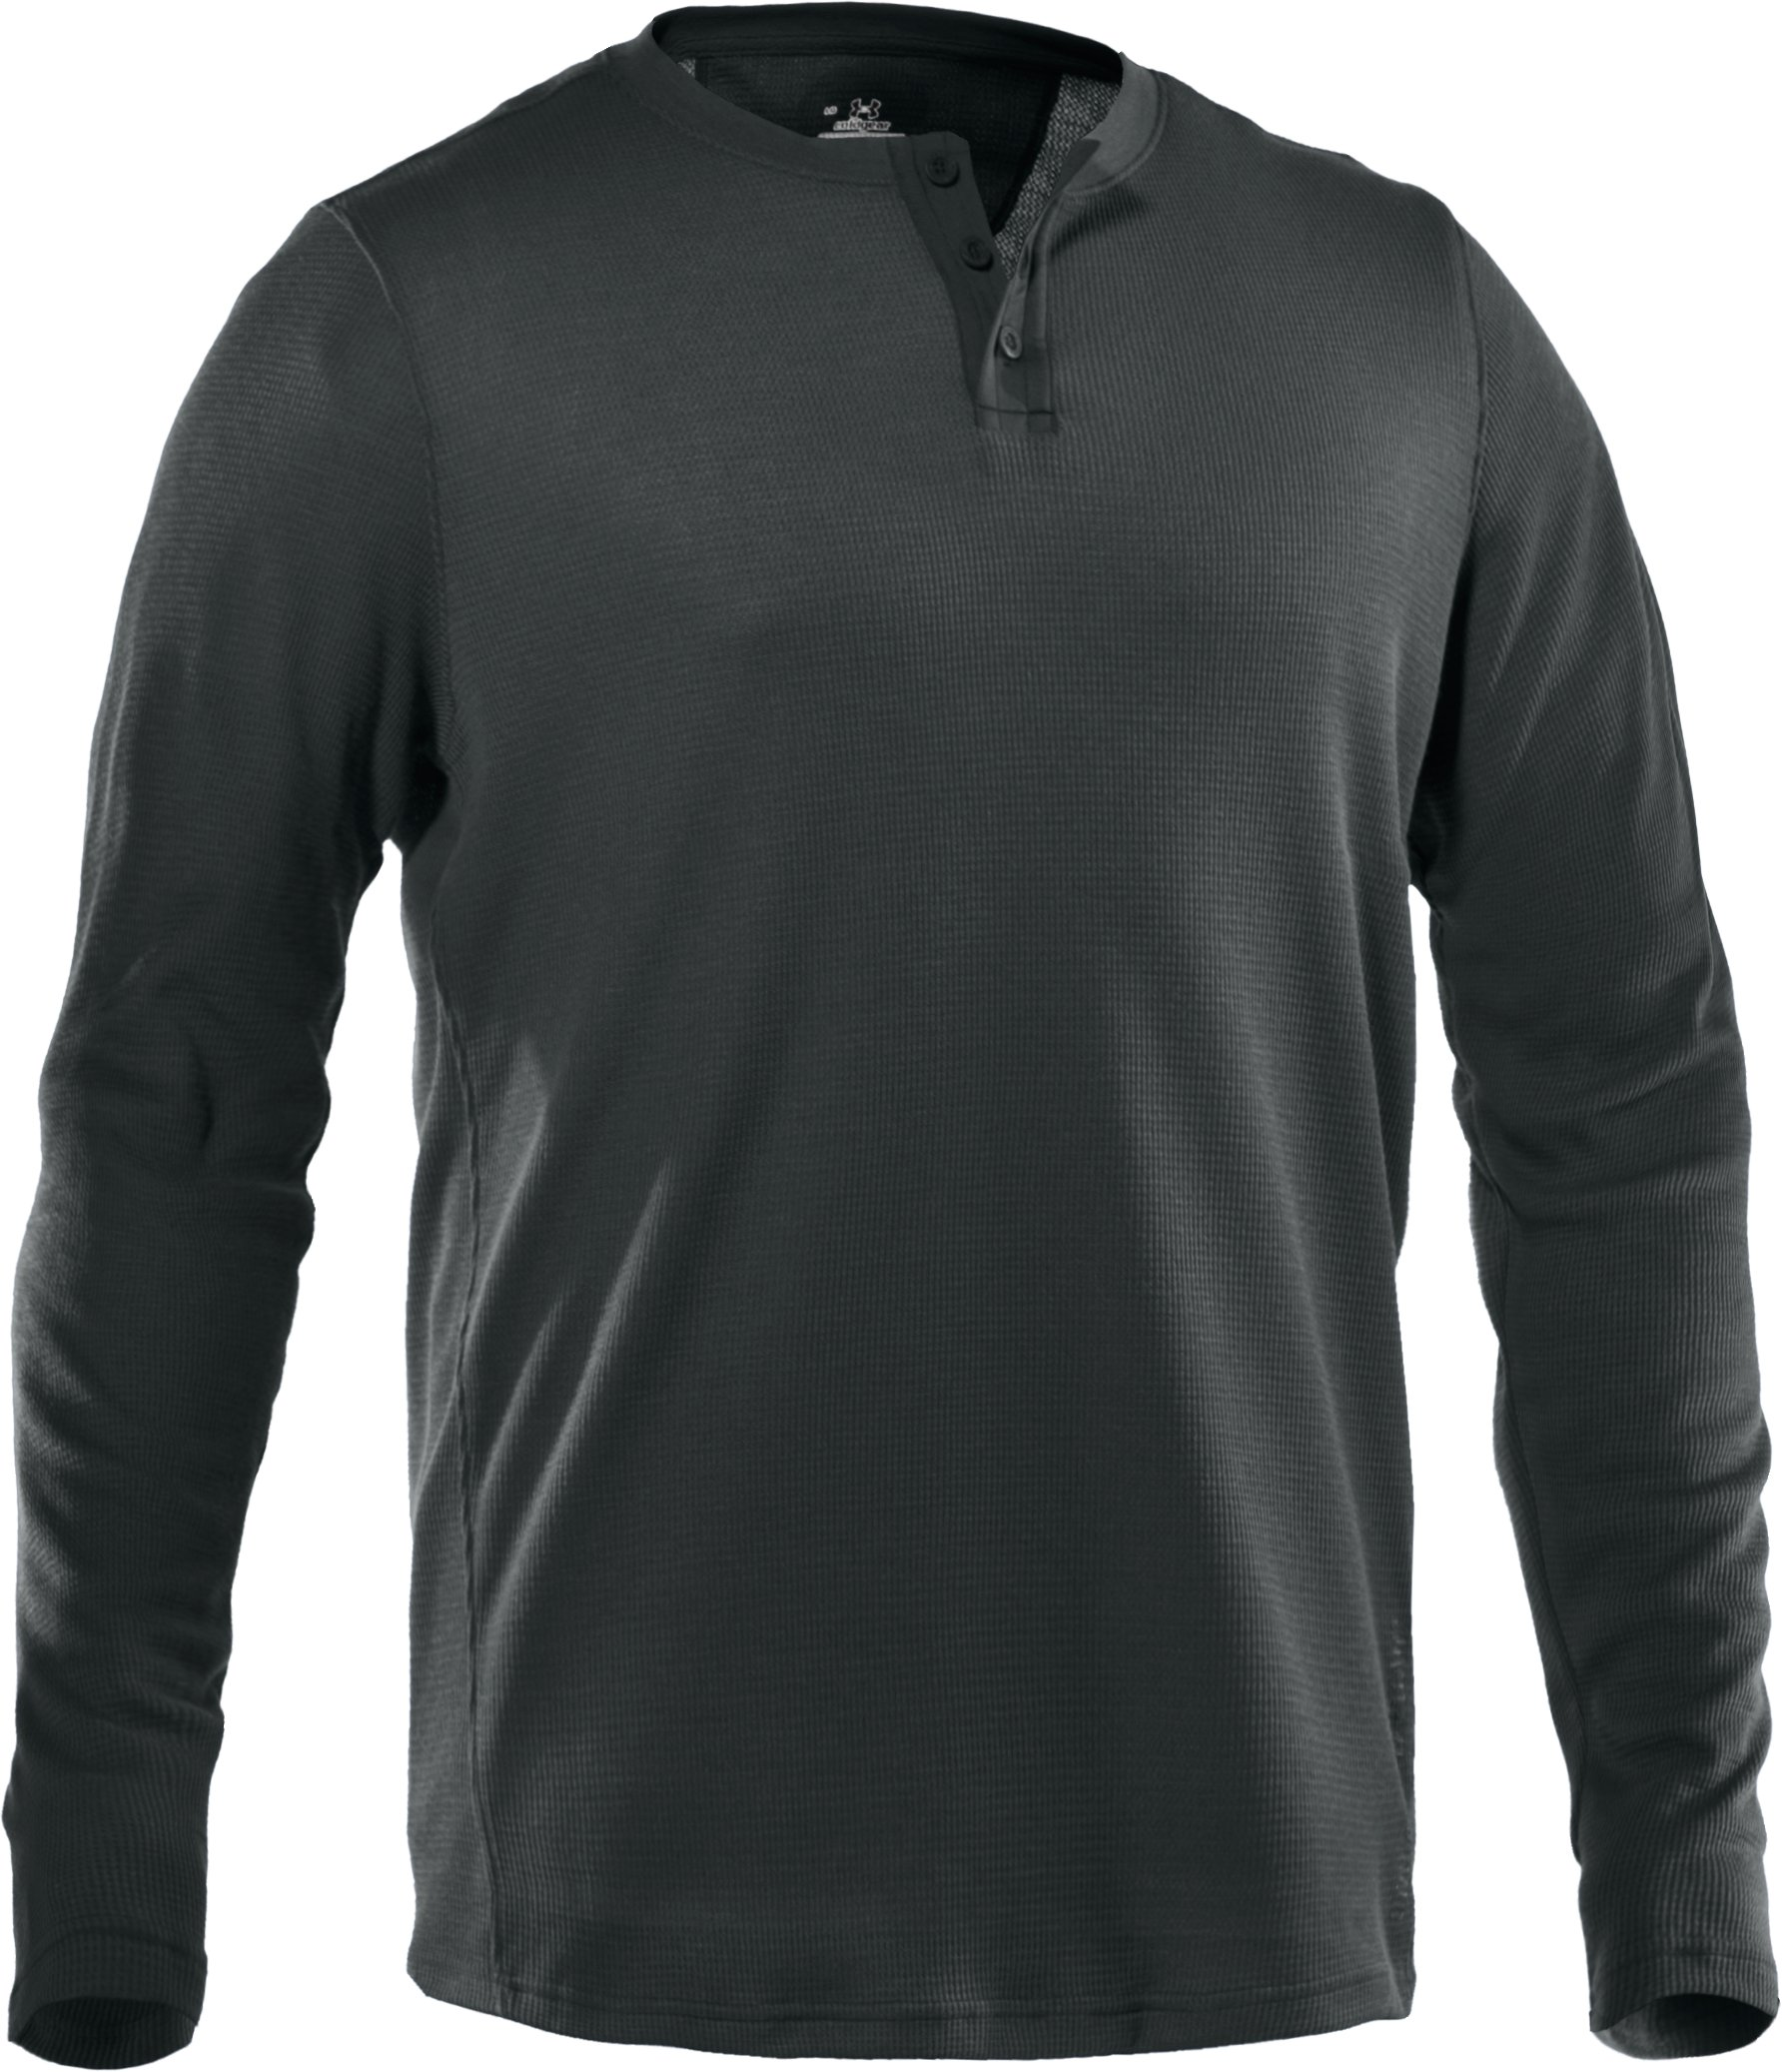 Men's Long Sleeve Waffle Henley Shirt, Battleship, undefined